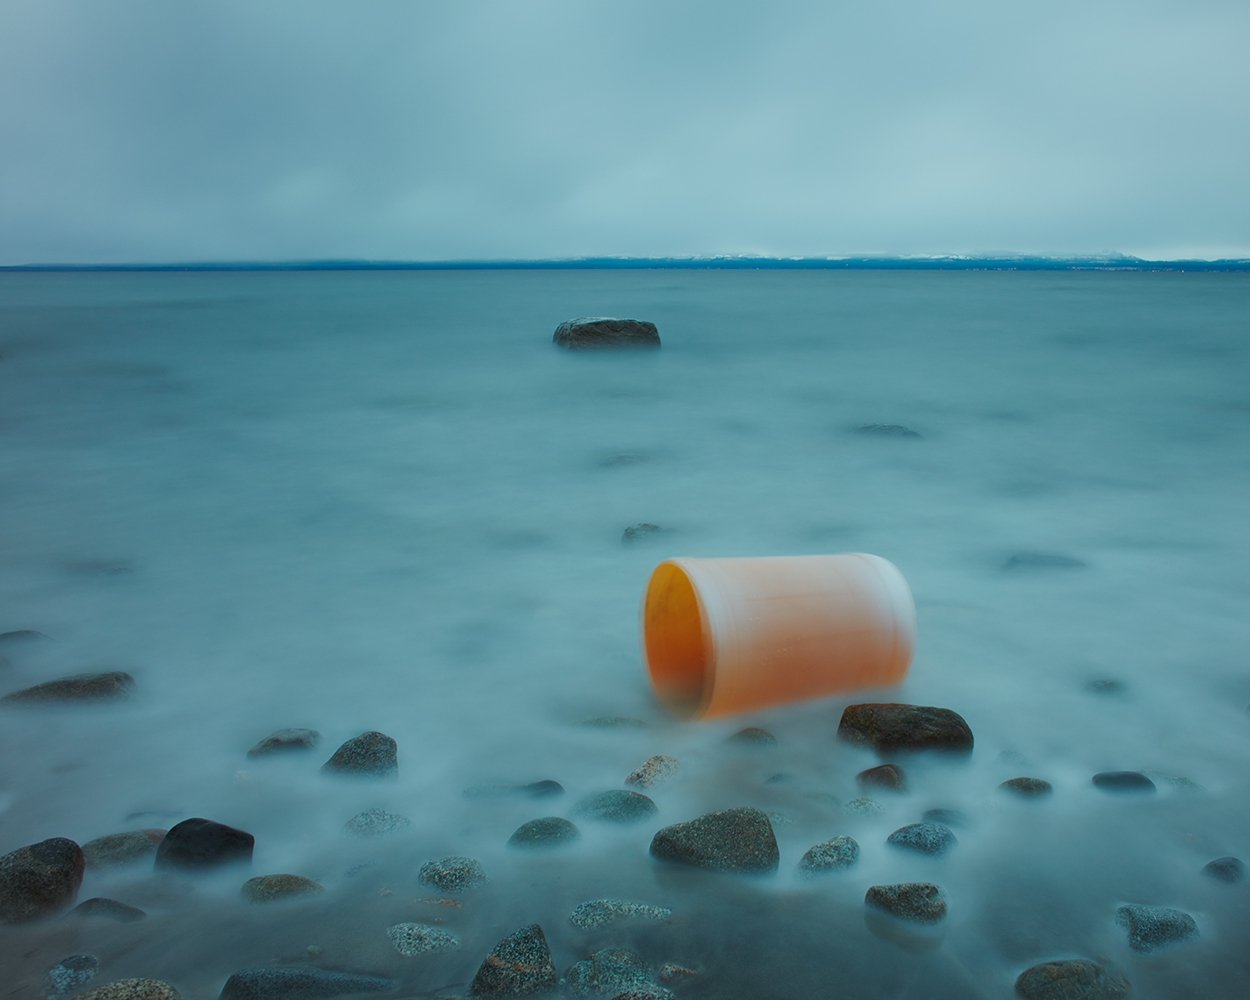 Unknown Entities - Traces of Warmth Still Fading, Orange Barrel  by David Ellingsen